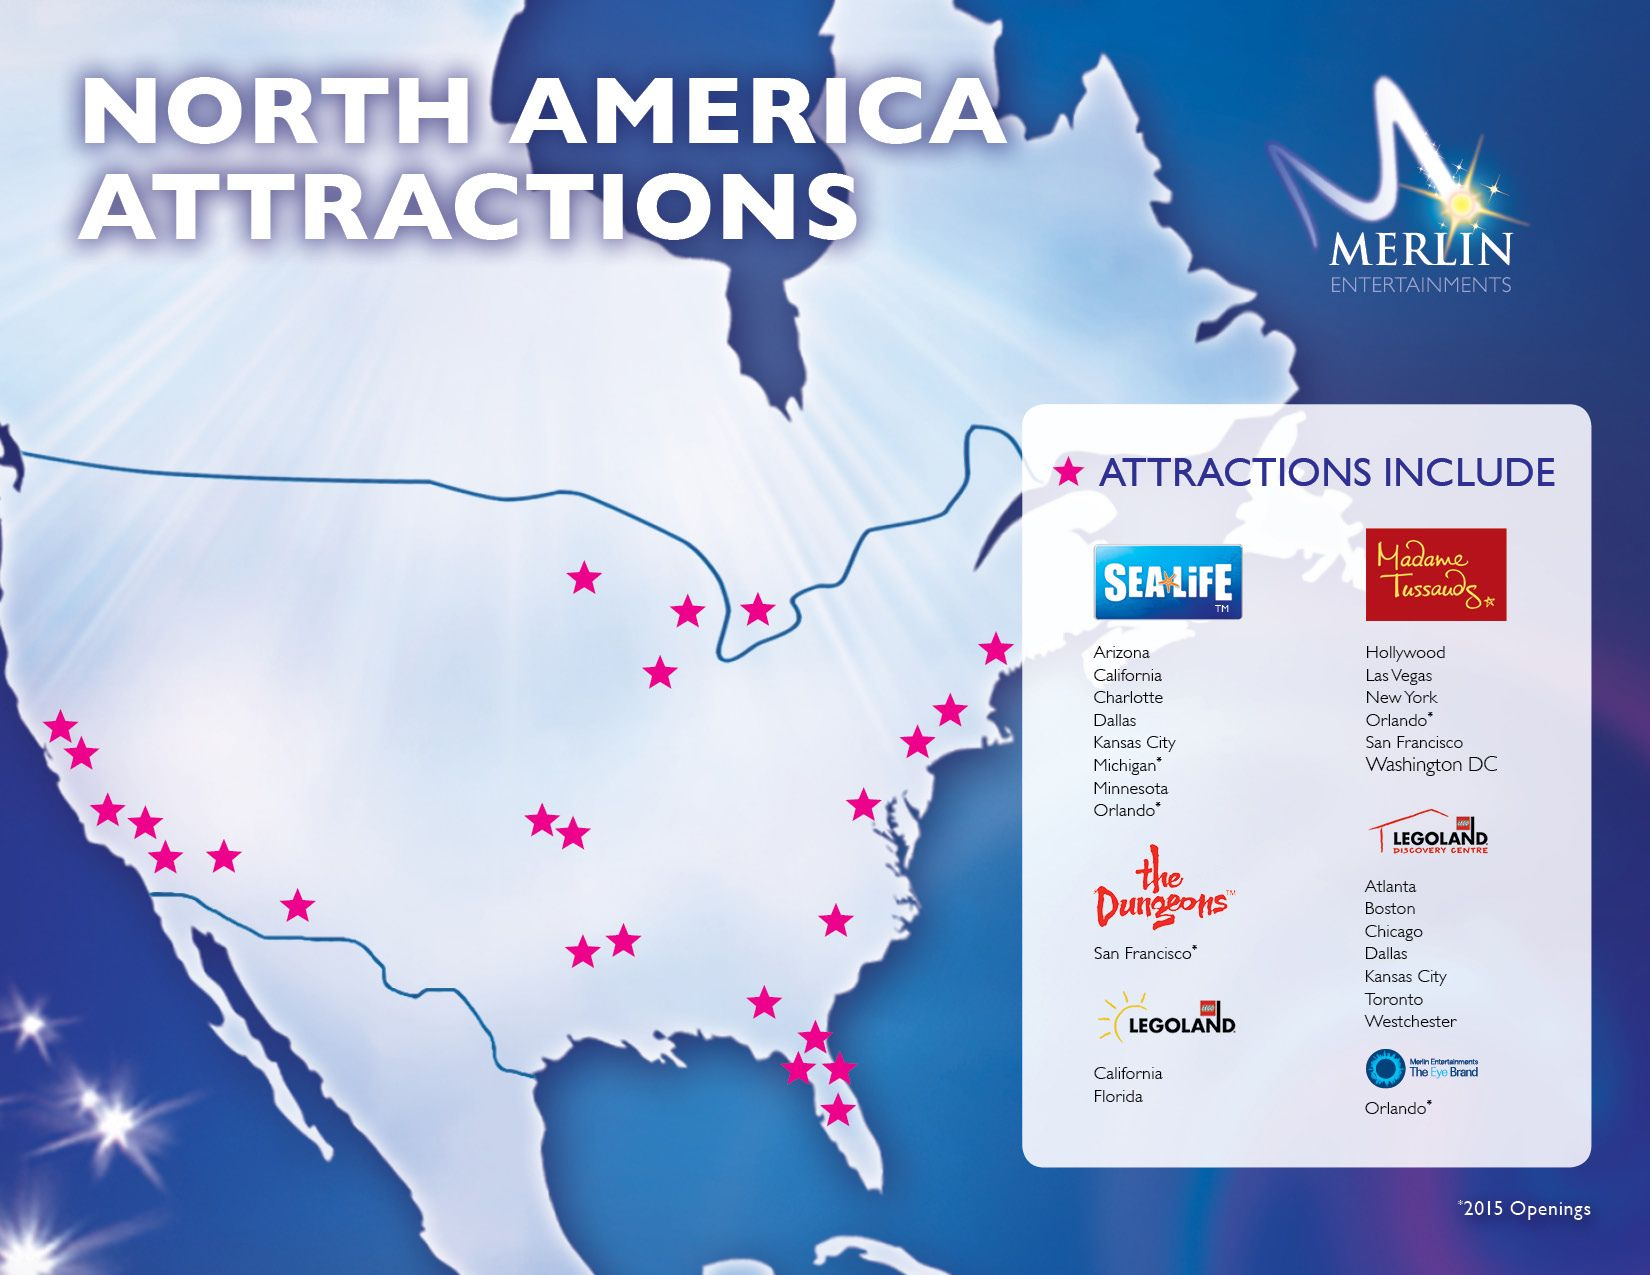 Merlin Entertainments North America Attractions Join the